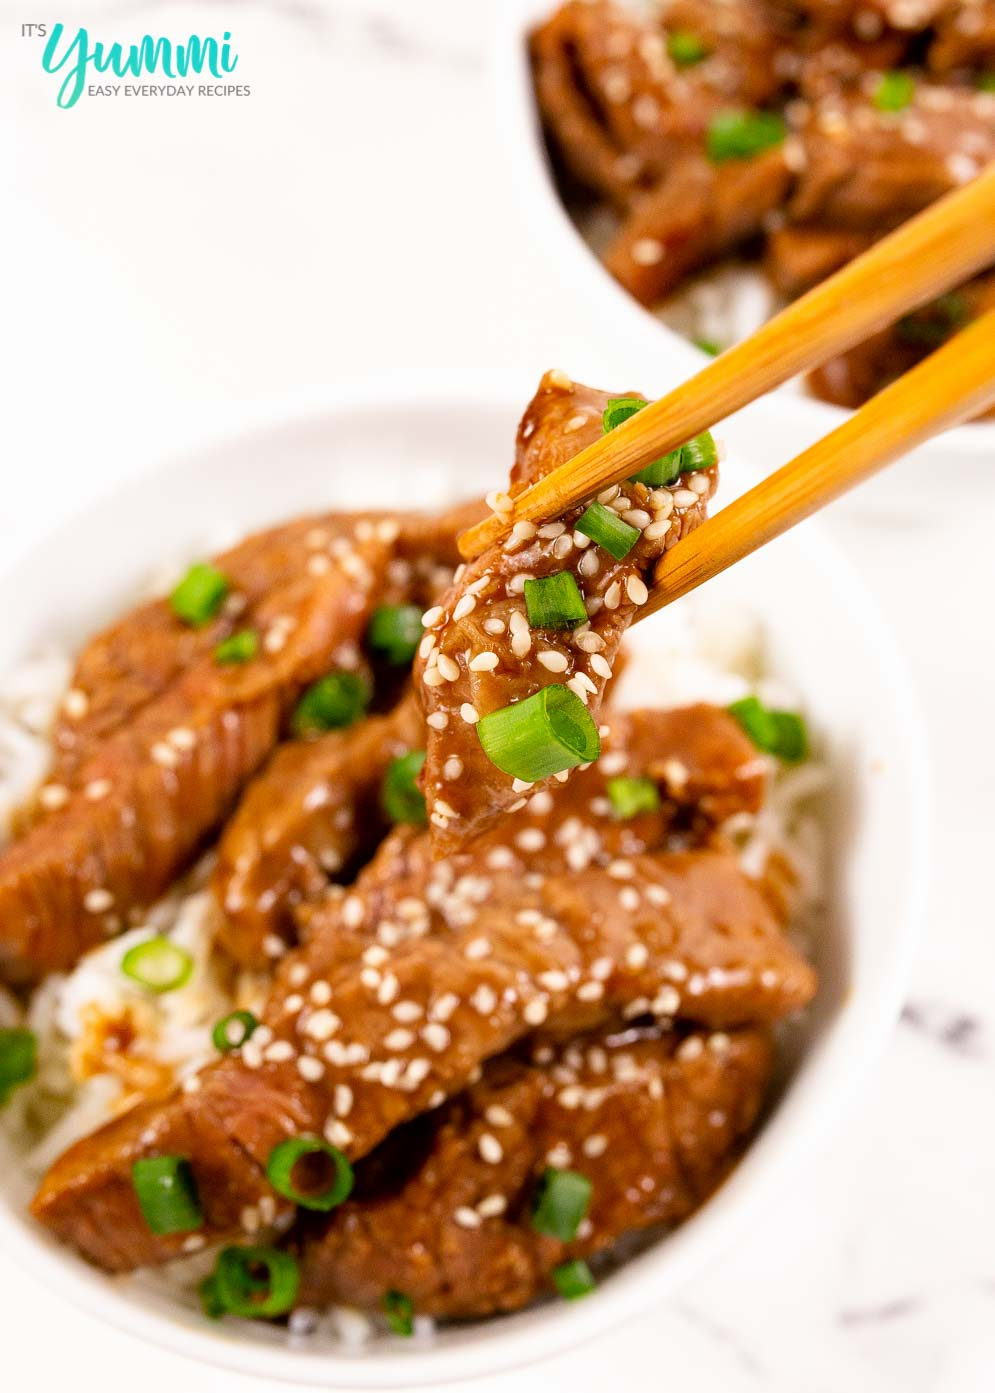 Close-up shot of chopsticks holding a piece of pf changs mongolian beef strip with scallions and sesame seeds on top